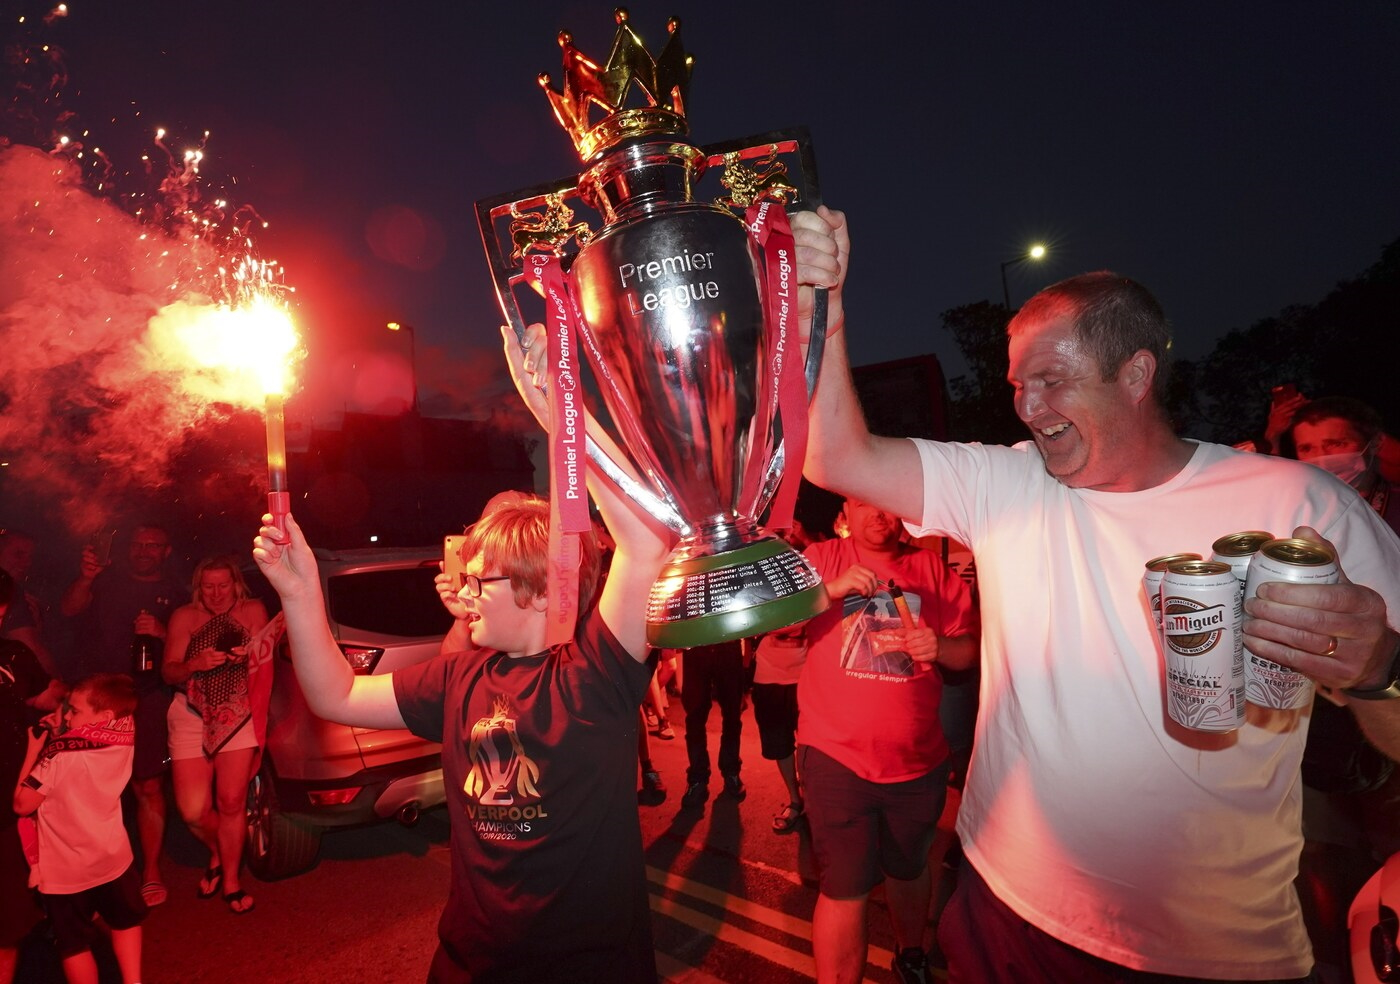 Liverpool supporters hold a replica Premier League trophy as they celebrate outside of Anfield Stadium in Liverpool, England, Thursday, June 25, 2020 after Liverpool clinched the English Premier League title. Liverpool took the title after Manchester City failed to beat Chelsea on Wednesday evening. (AP photo/Jon Super)